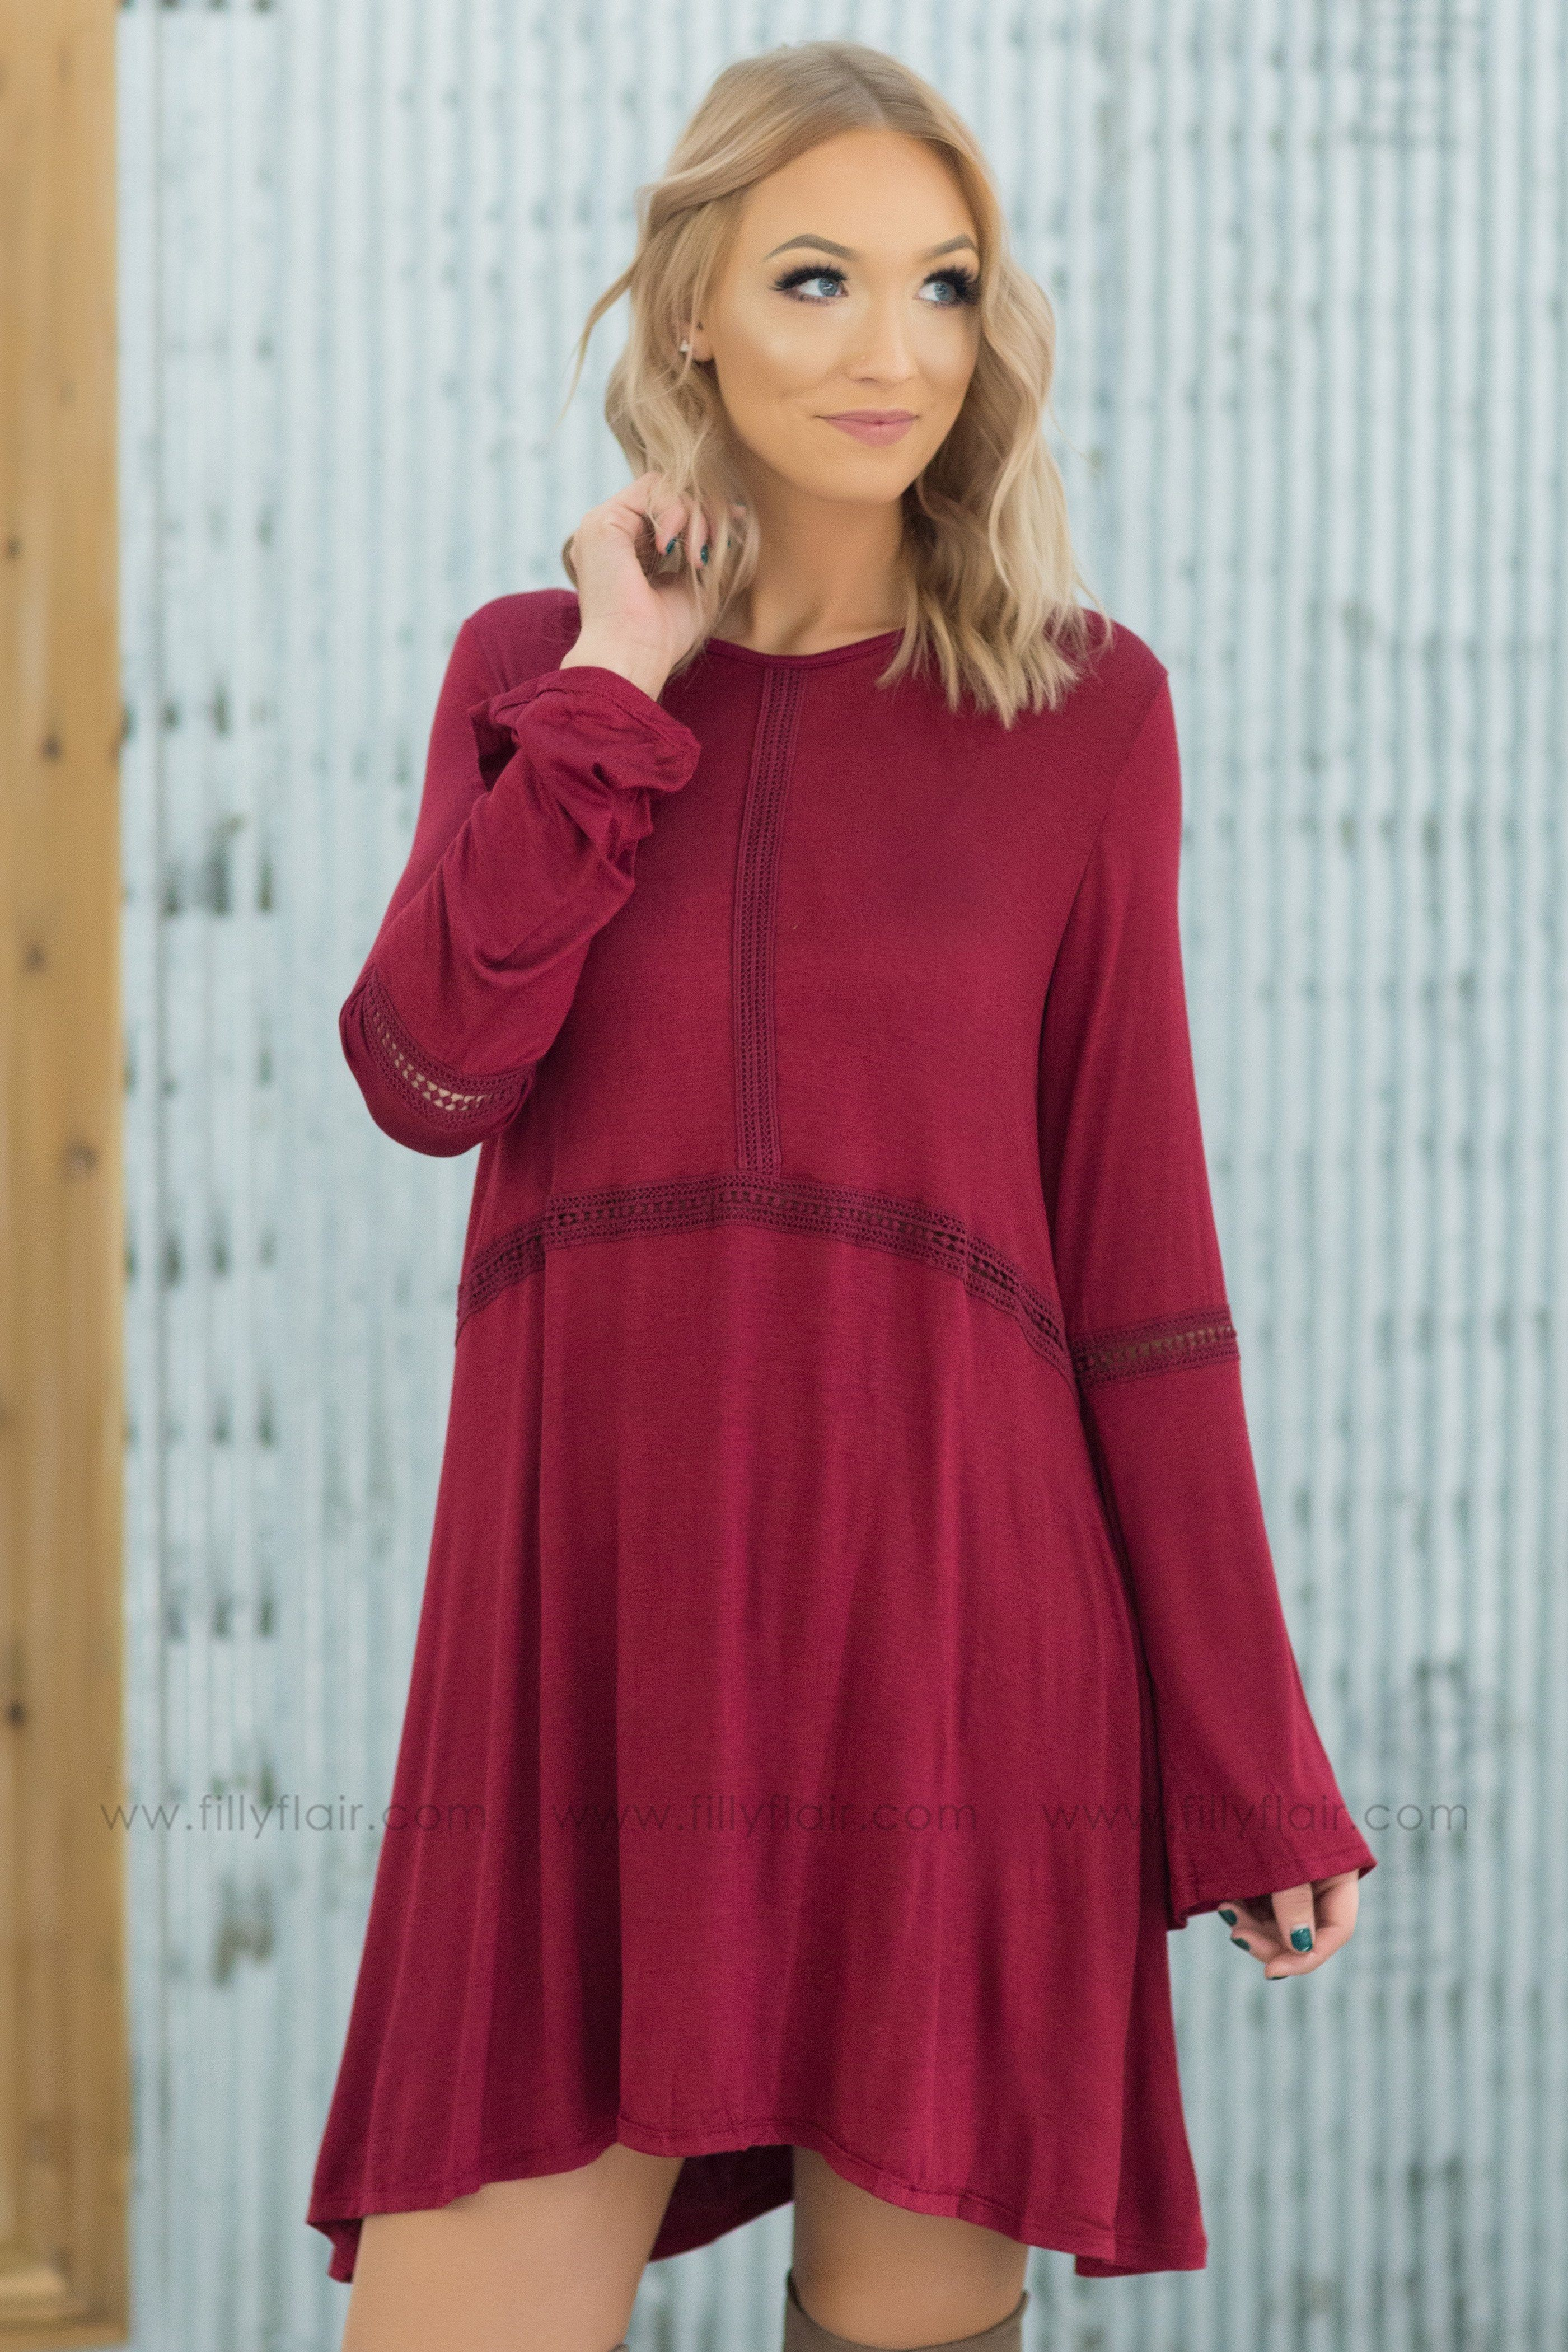 All You Want Is Me Long Sleeve Crochet Detail Dress in Burgundy - Filly Flair